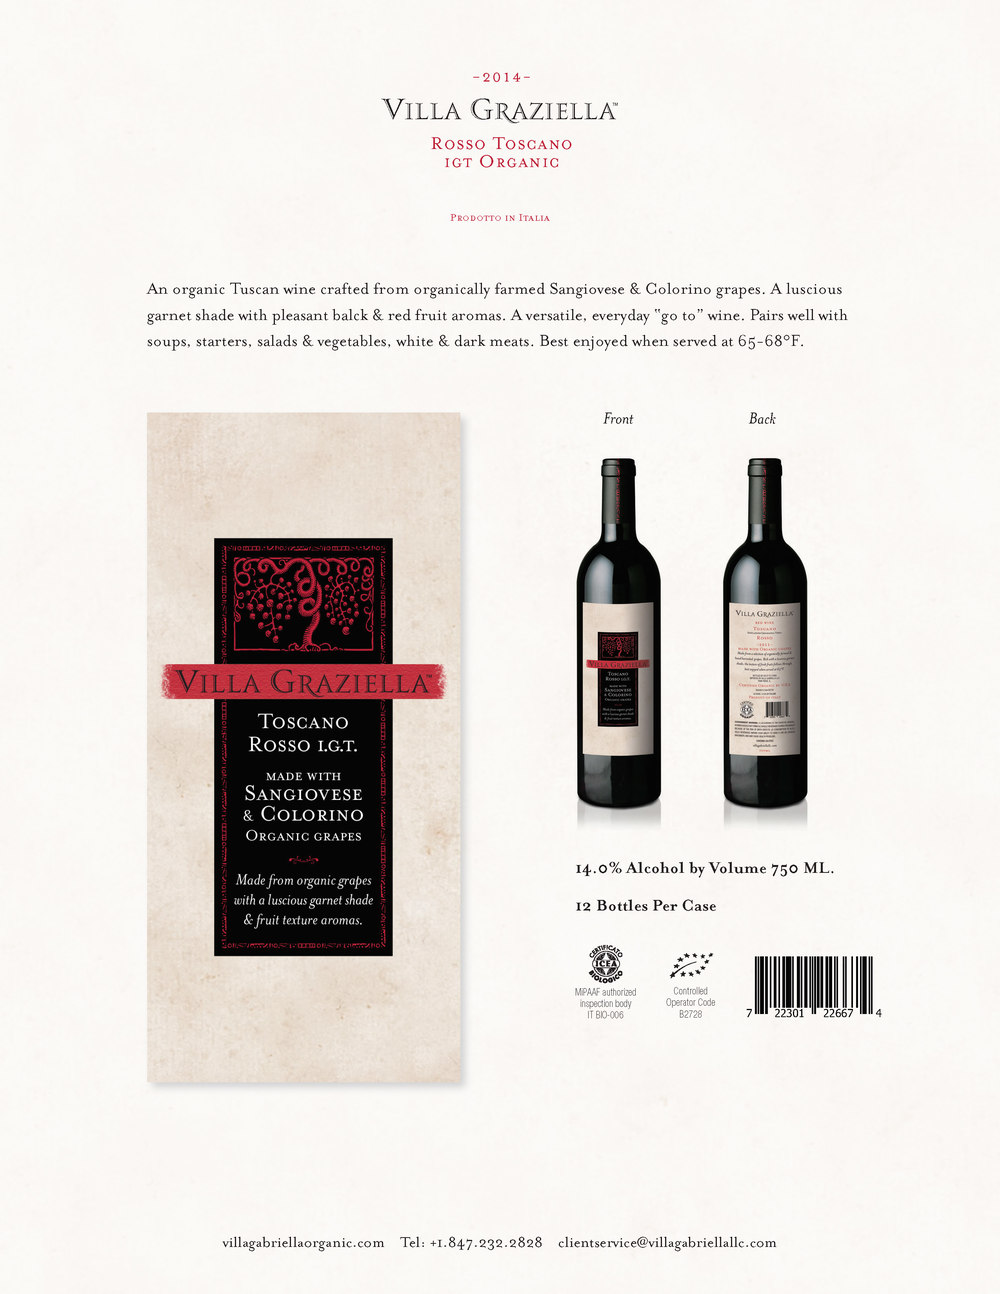 -2014- Toscano Rosso IGT Tasting Notes